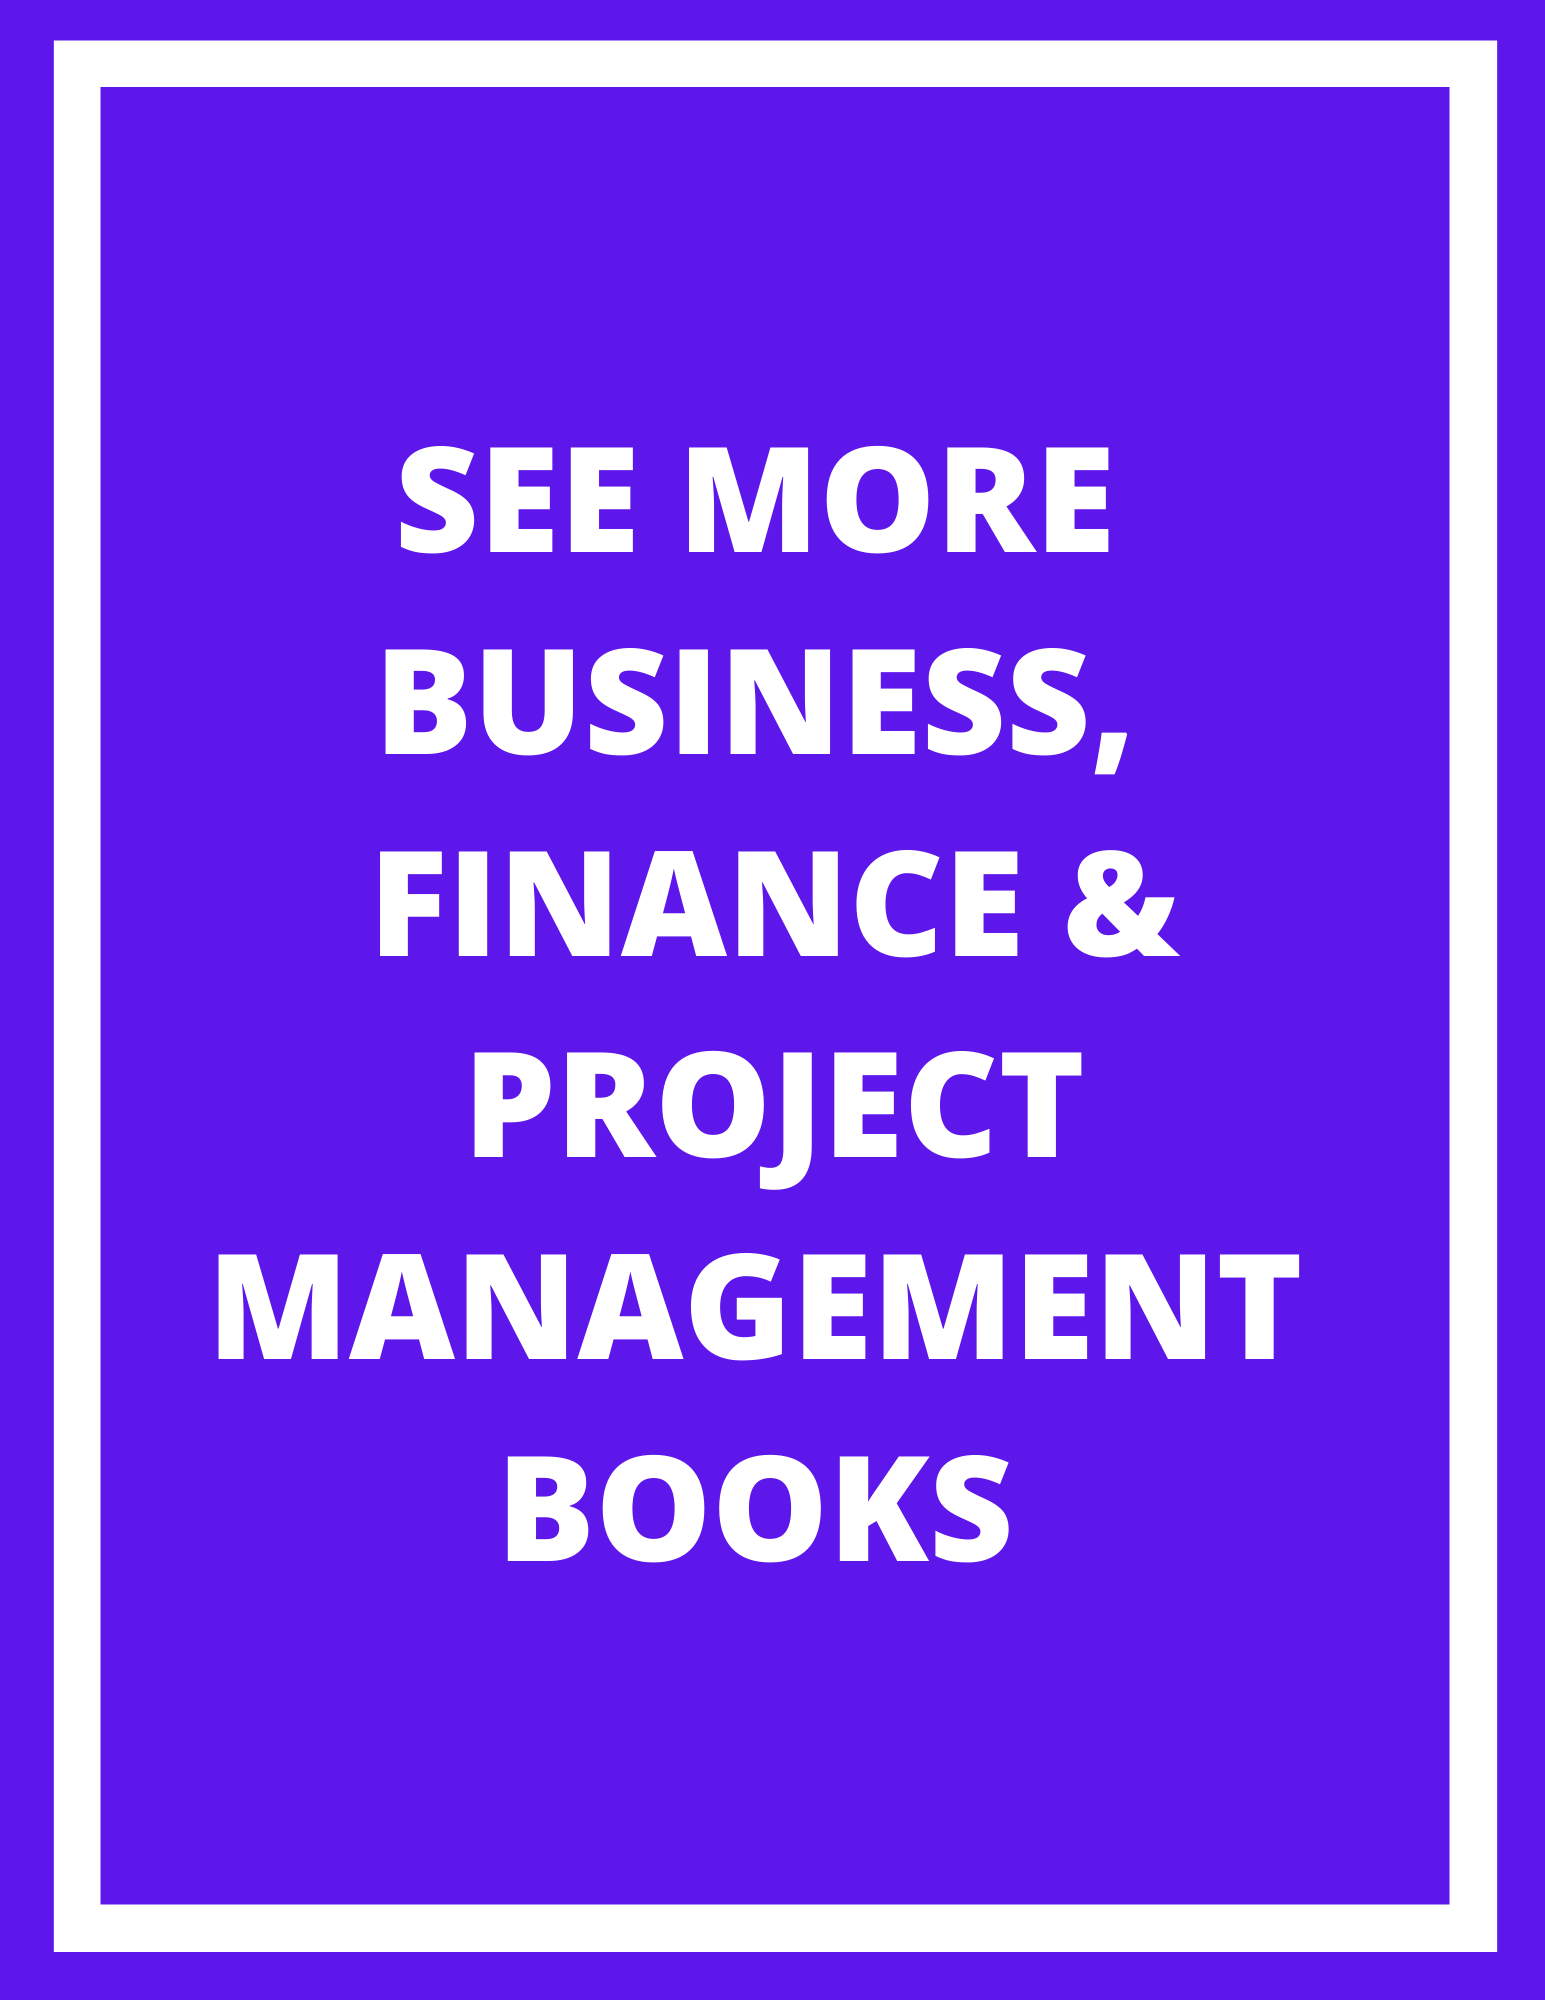 Link to see more business, finance and project management books